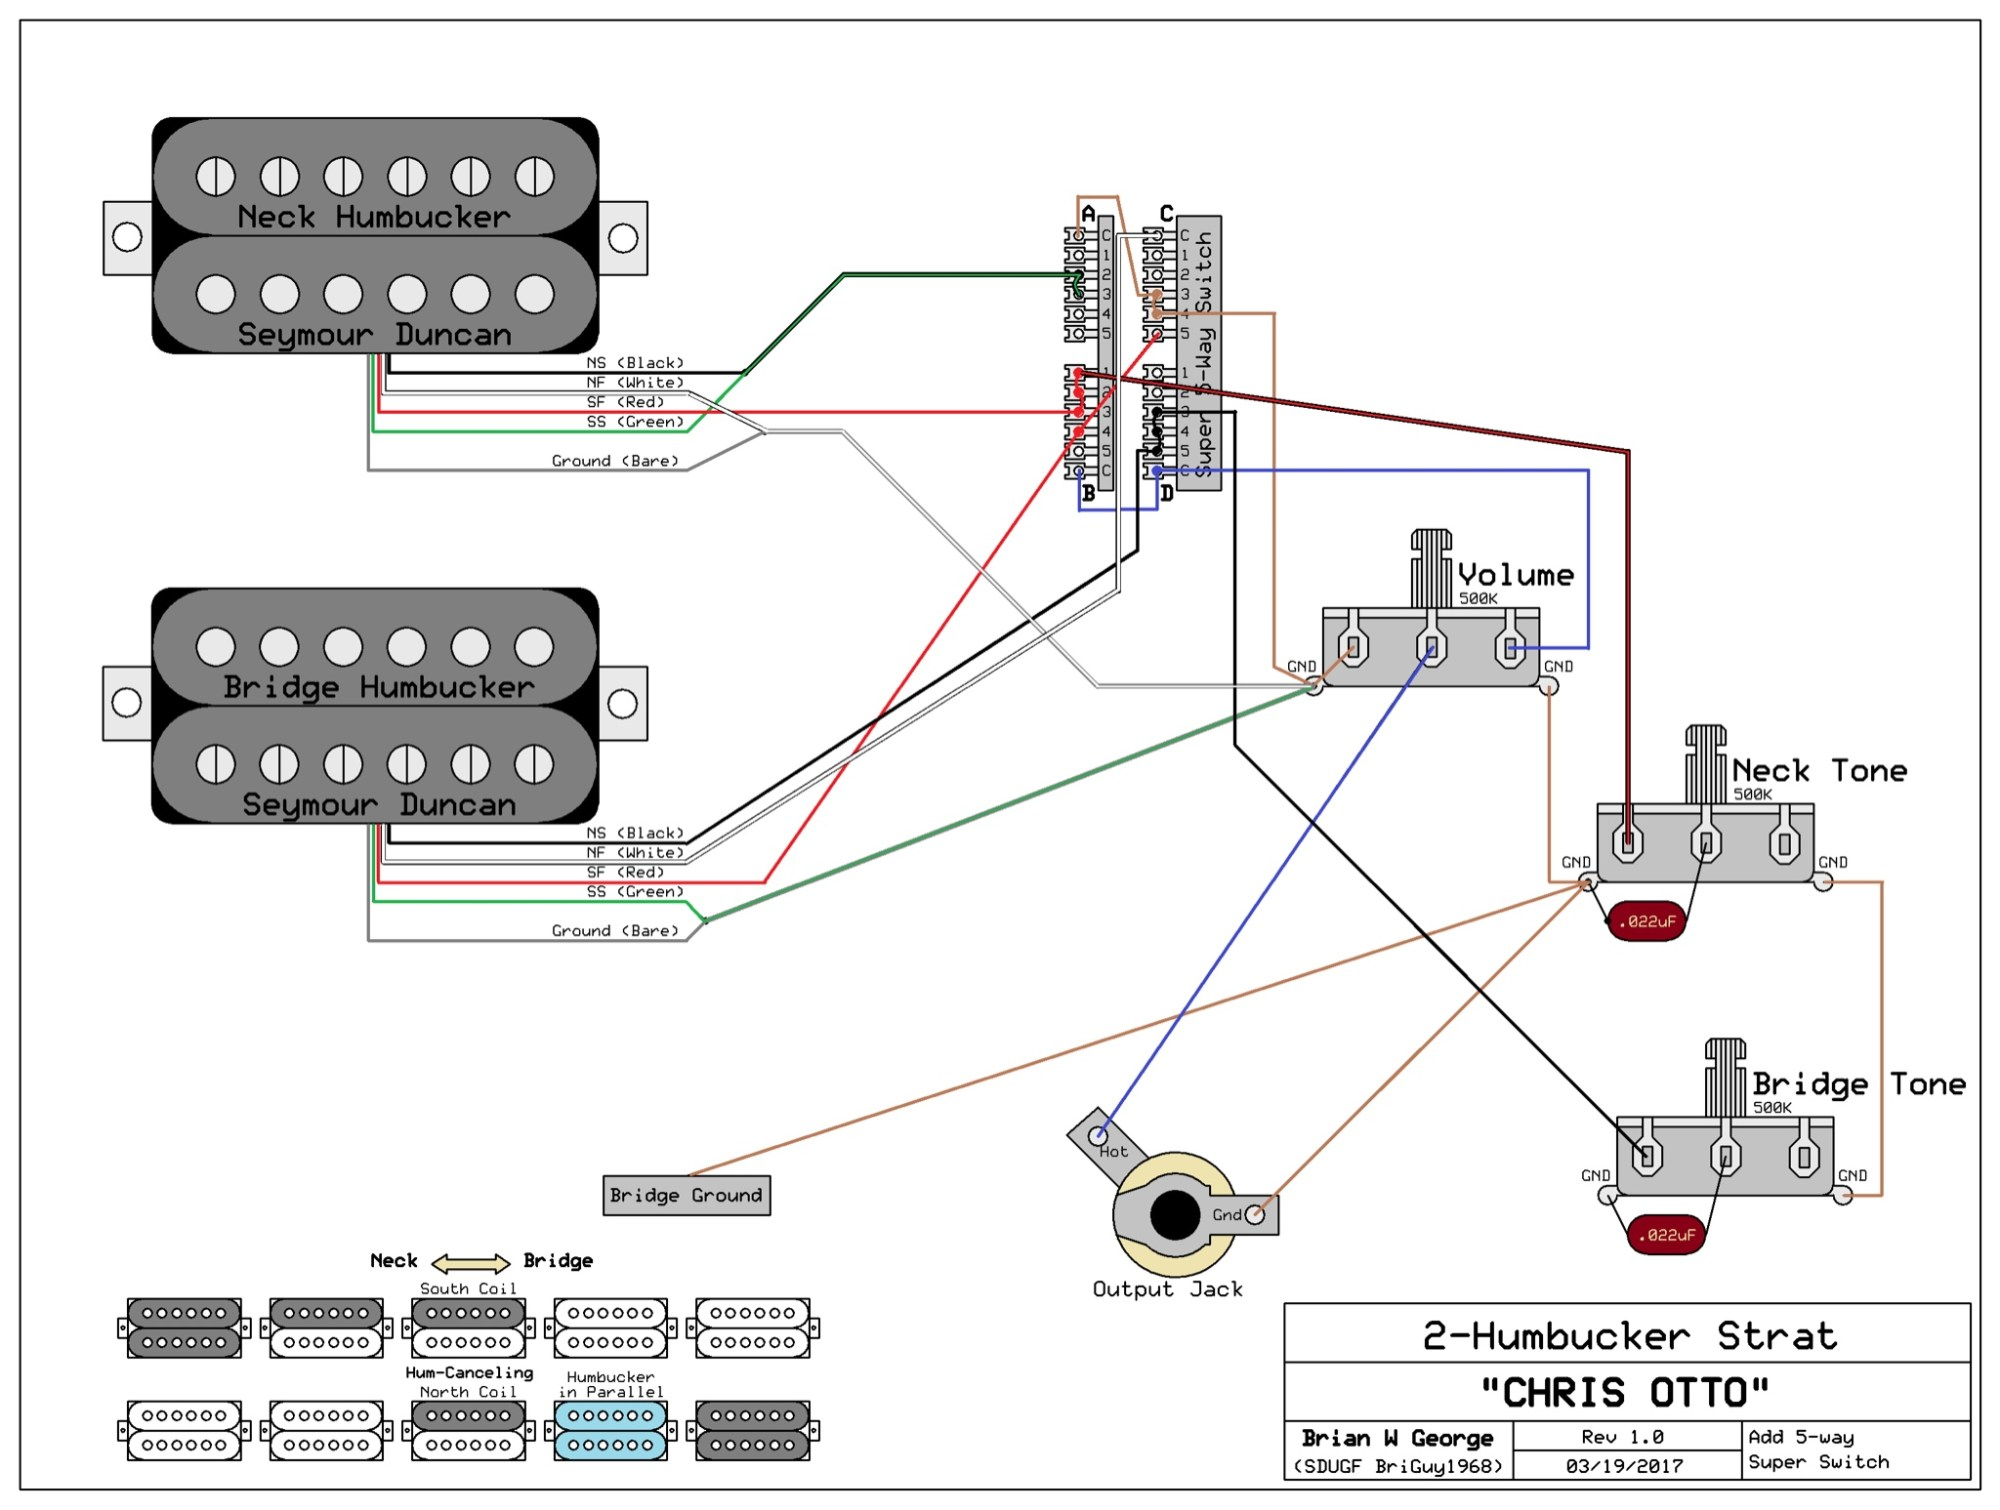 hight resolution of 2 humbuckers 1 vol 1 tone 5 way super switch wiring diagram